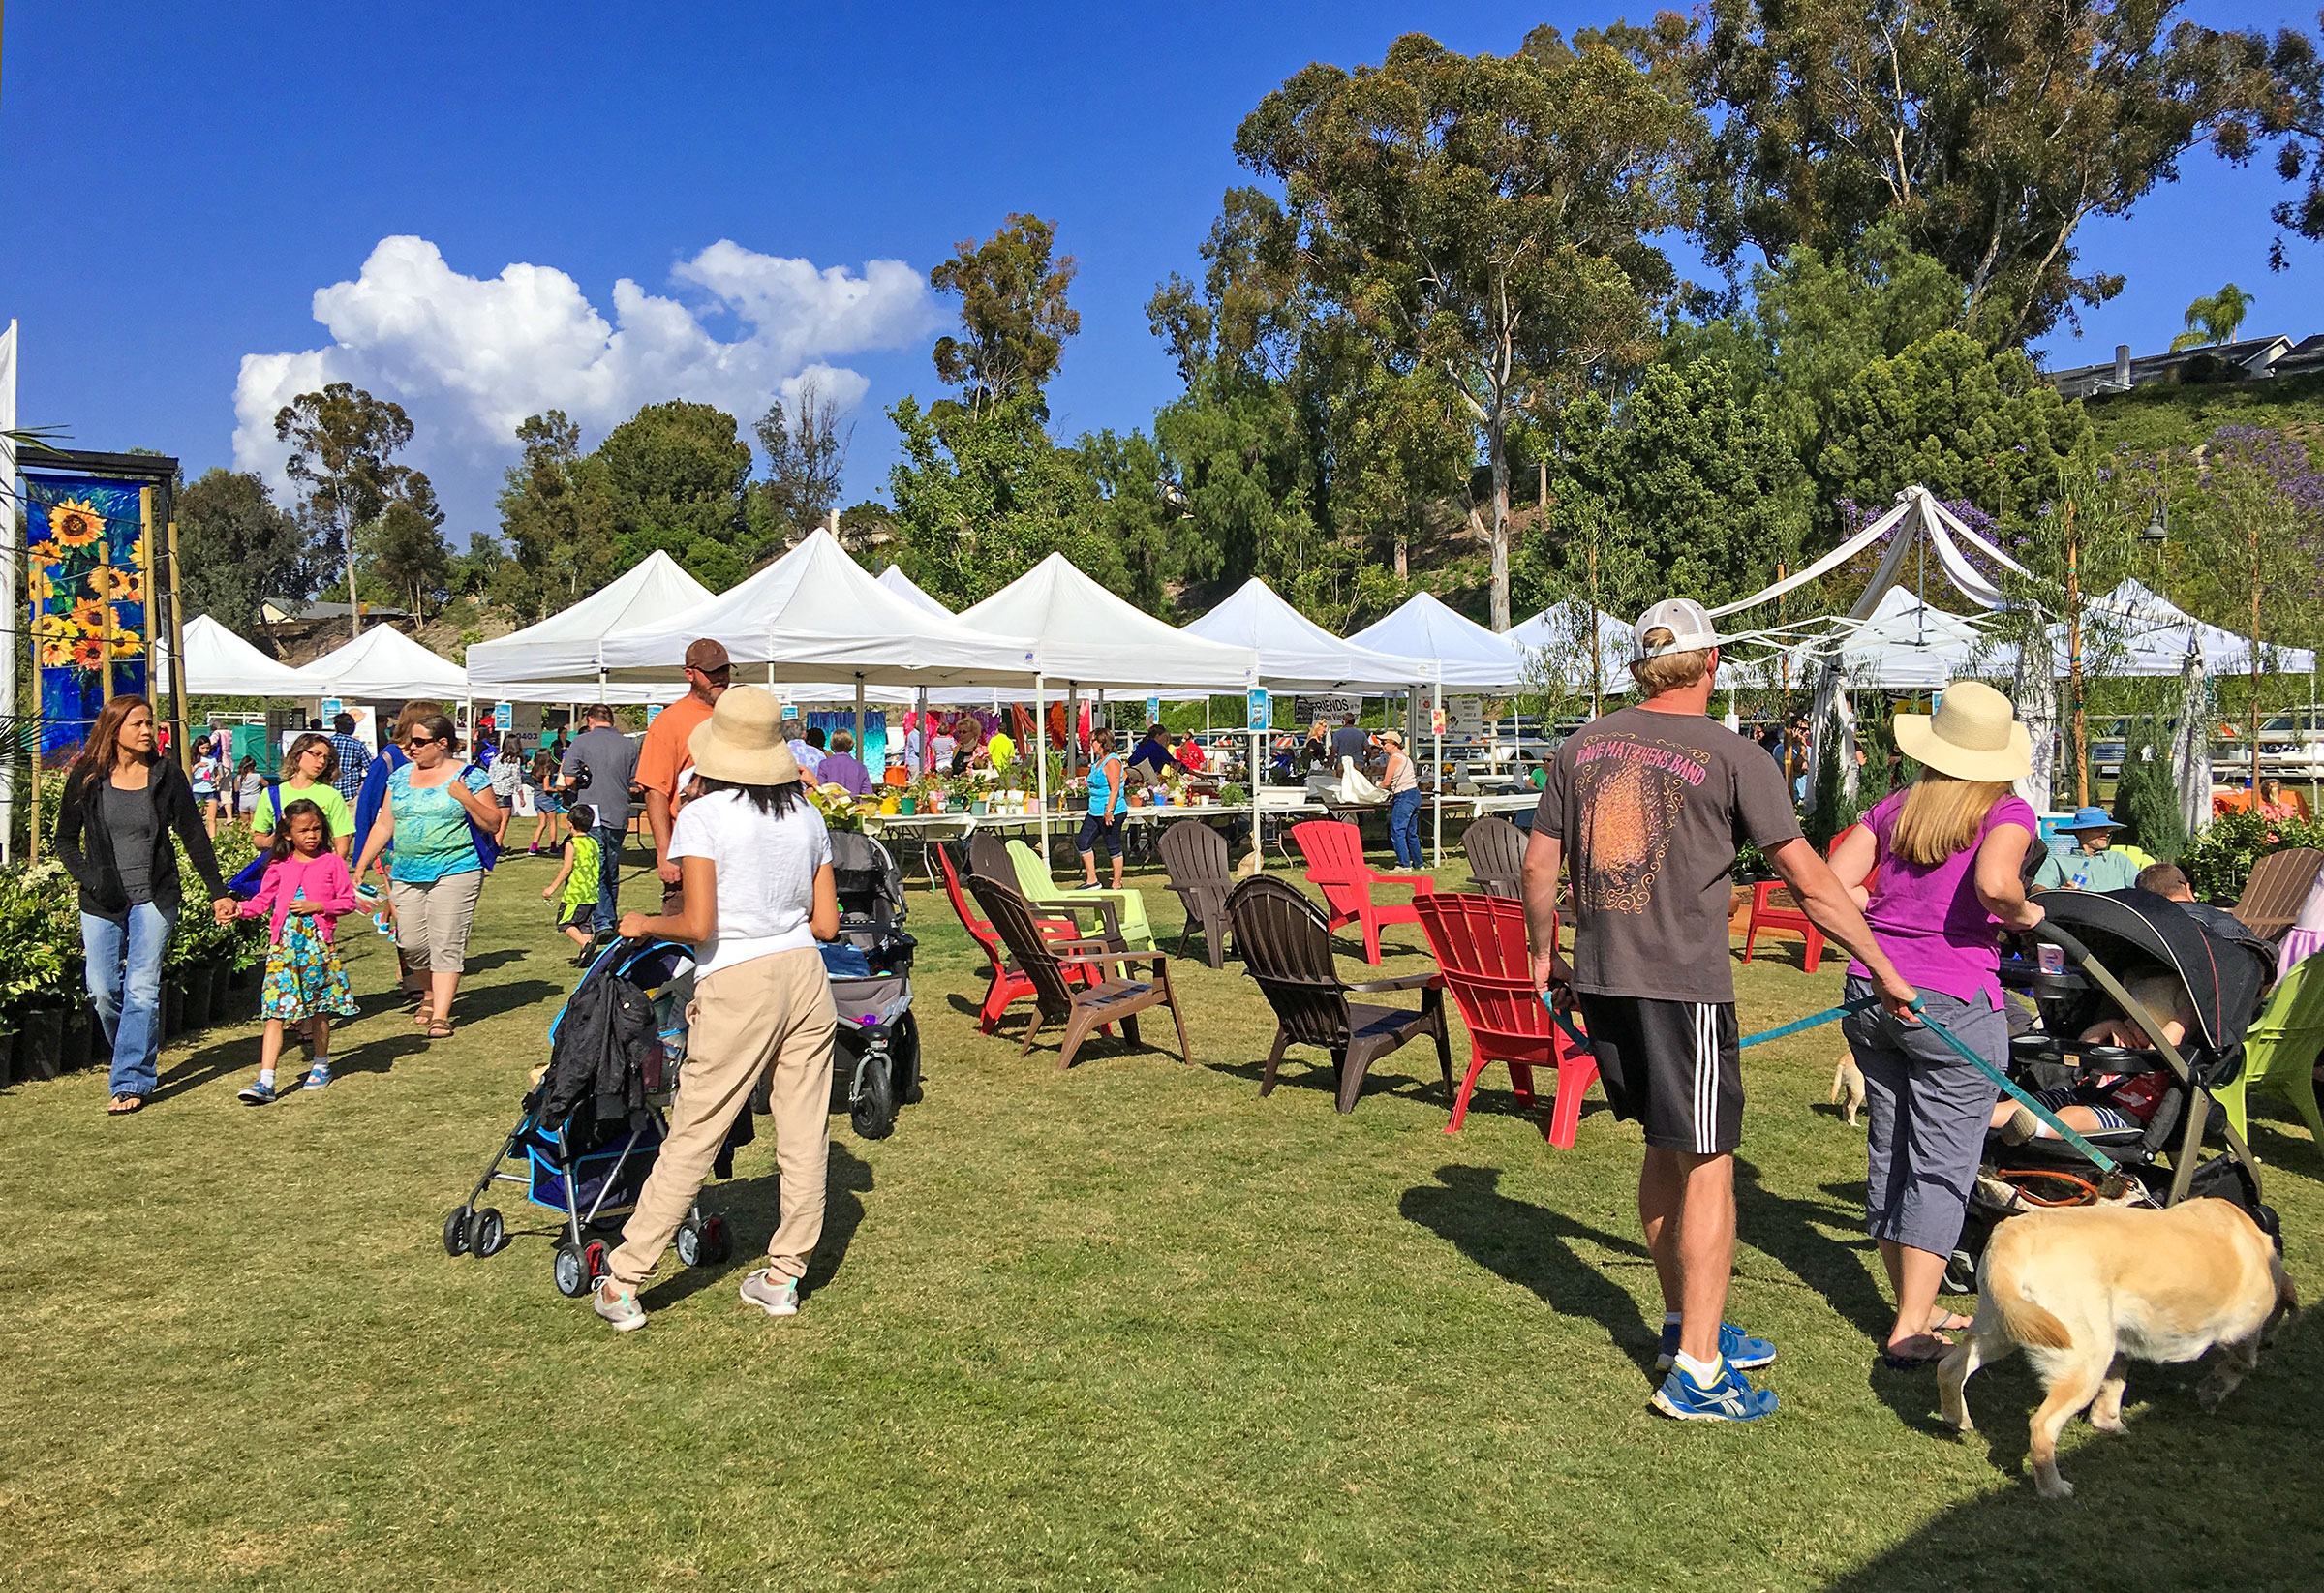 Community for All to Enjoy in Mission Viejo